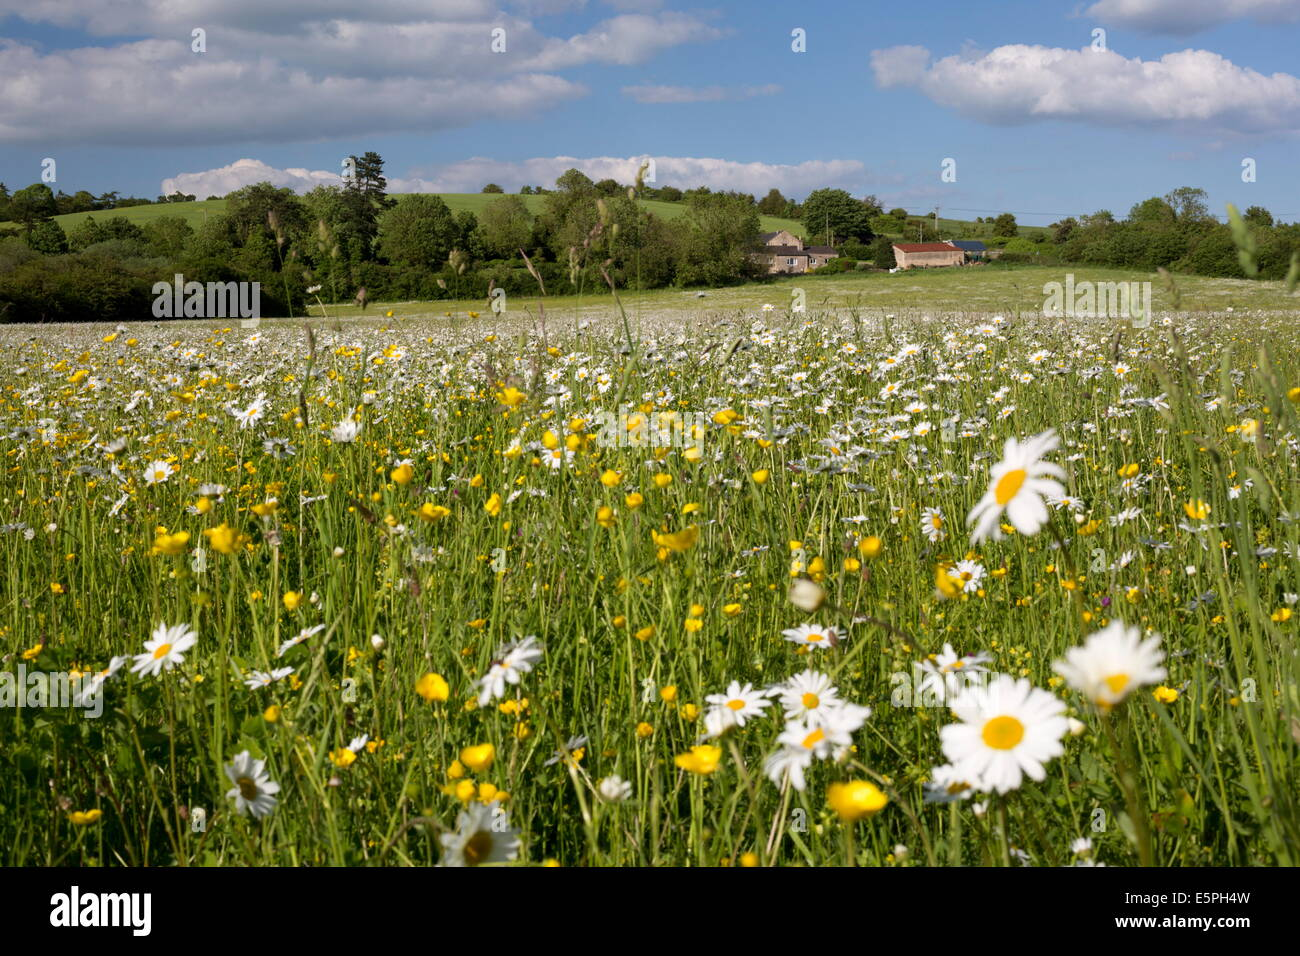 Summer meadow with daisies and buttercups, Syreford, Cotswolds, Gloucestershire, England, United Kingdom, Europe - Stock Image